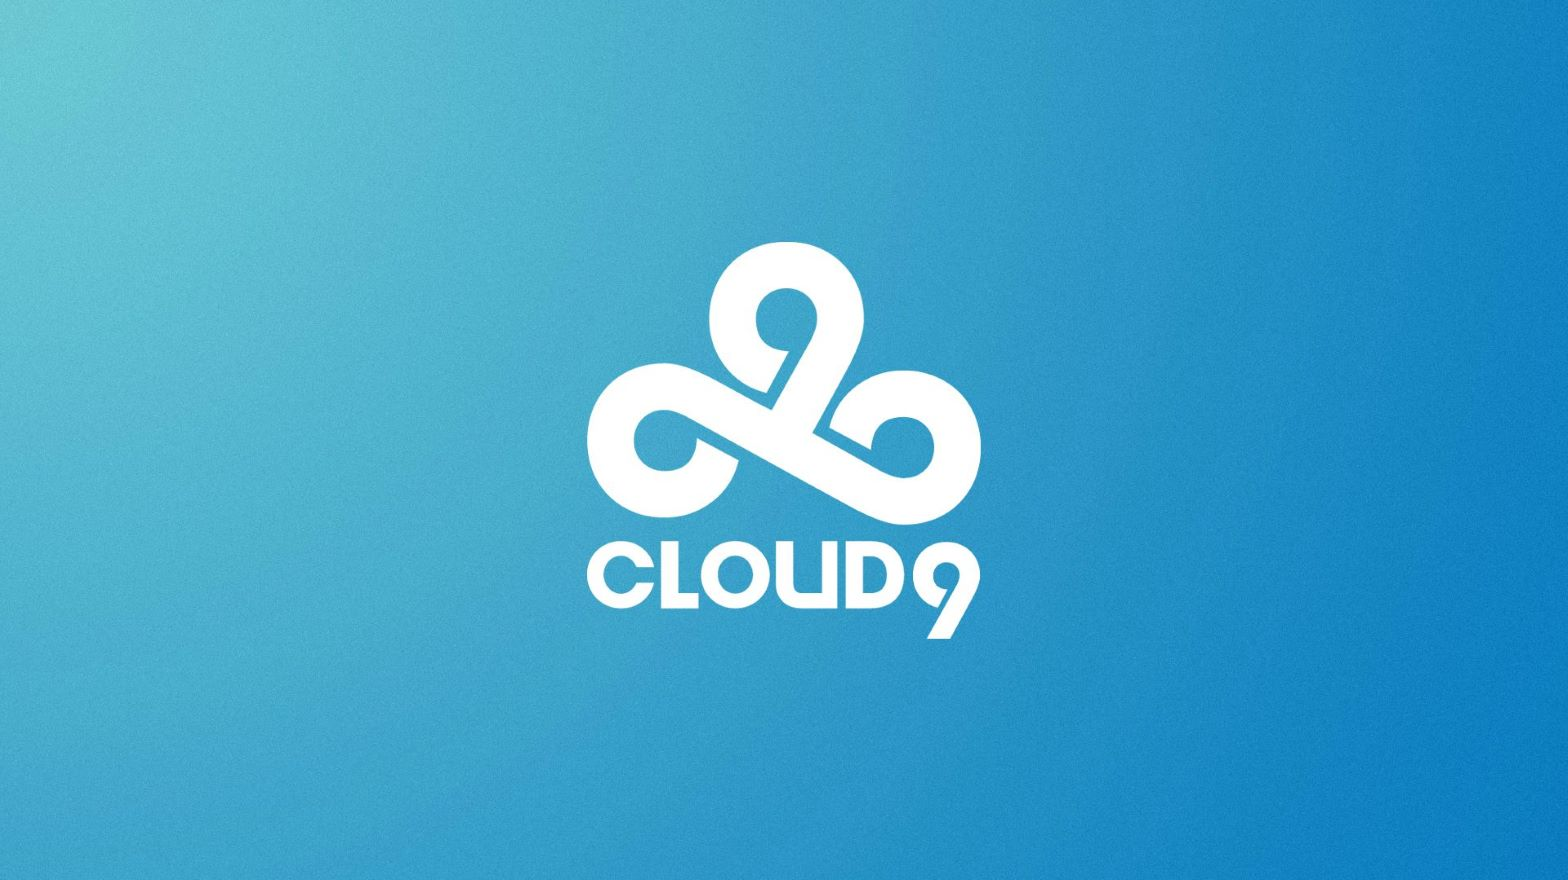 cloud9 logo on a blue background